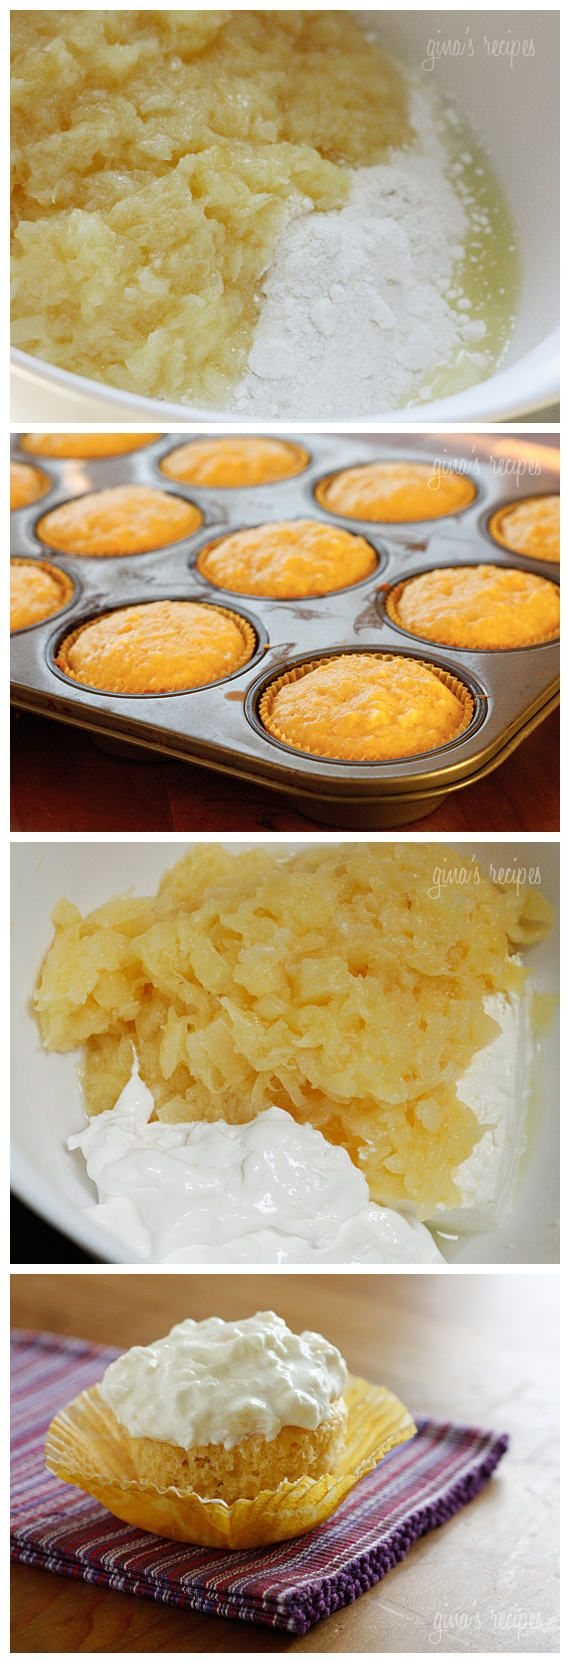 ... pineapple bliss cupcakes skinny points recipes pineapple bliss